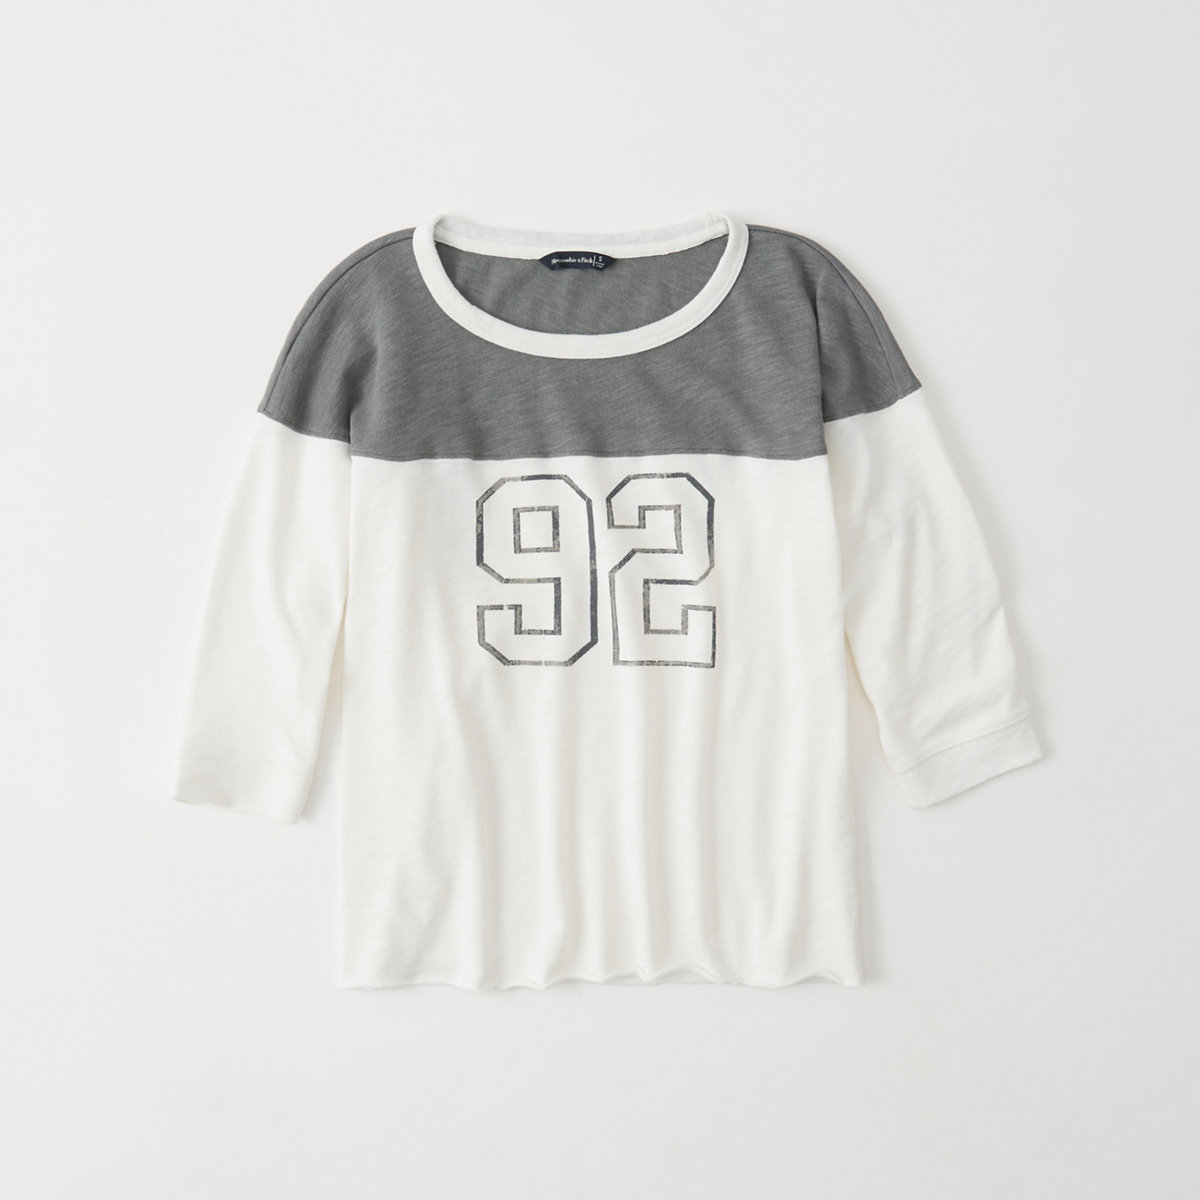 gray and white long sleeved graphic football tee.